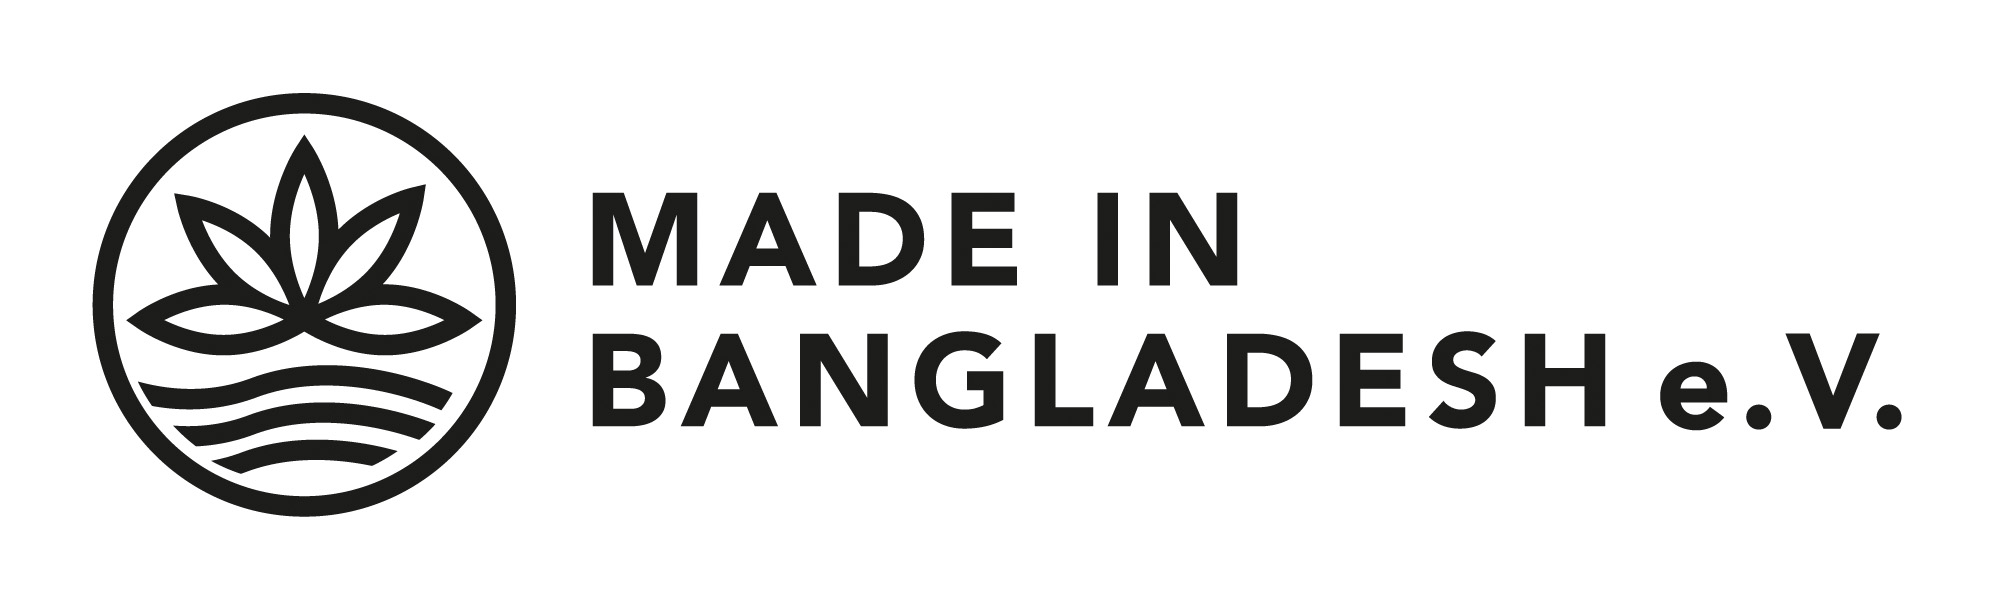 MADE IN BANGLADESH e.V.